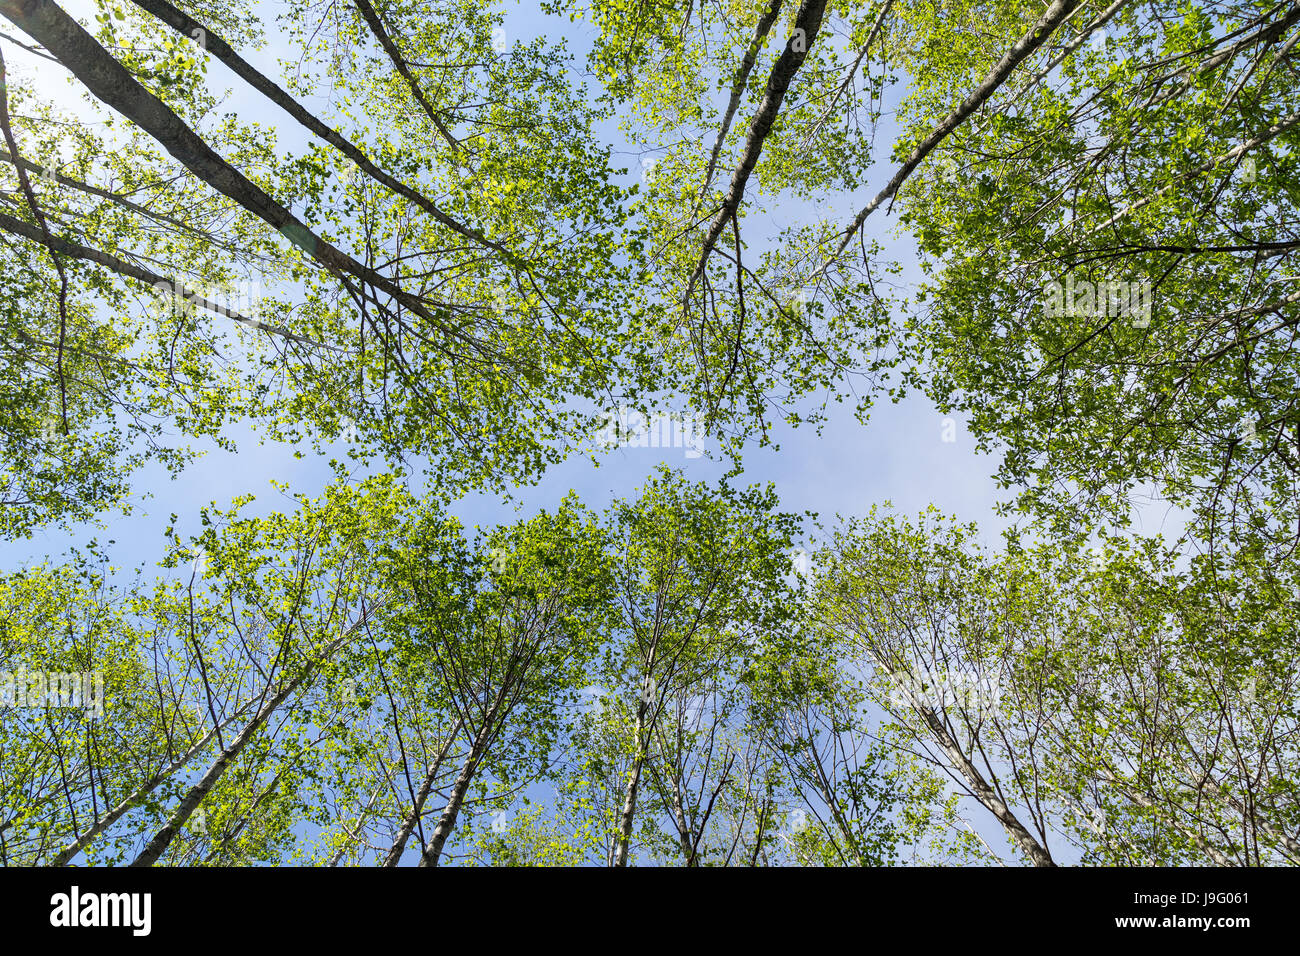 Verdant trees in a forest viewed from below in the summer. - Stock Image